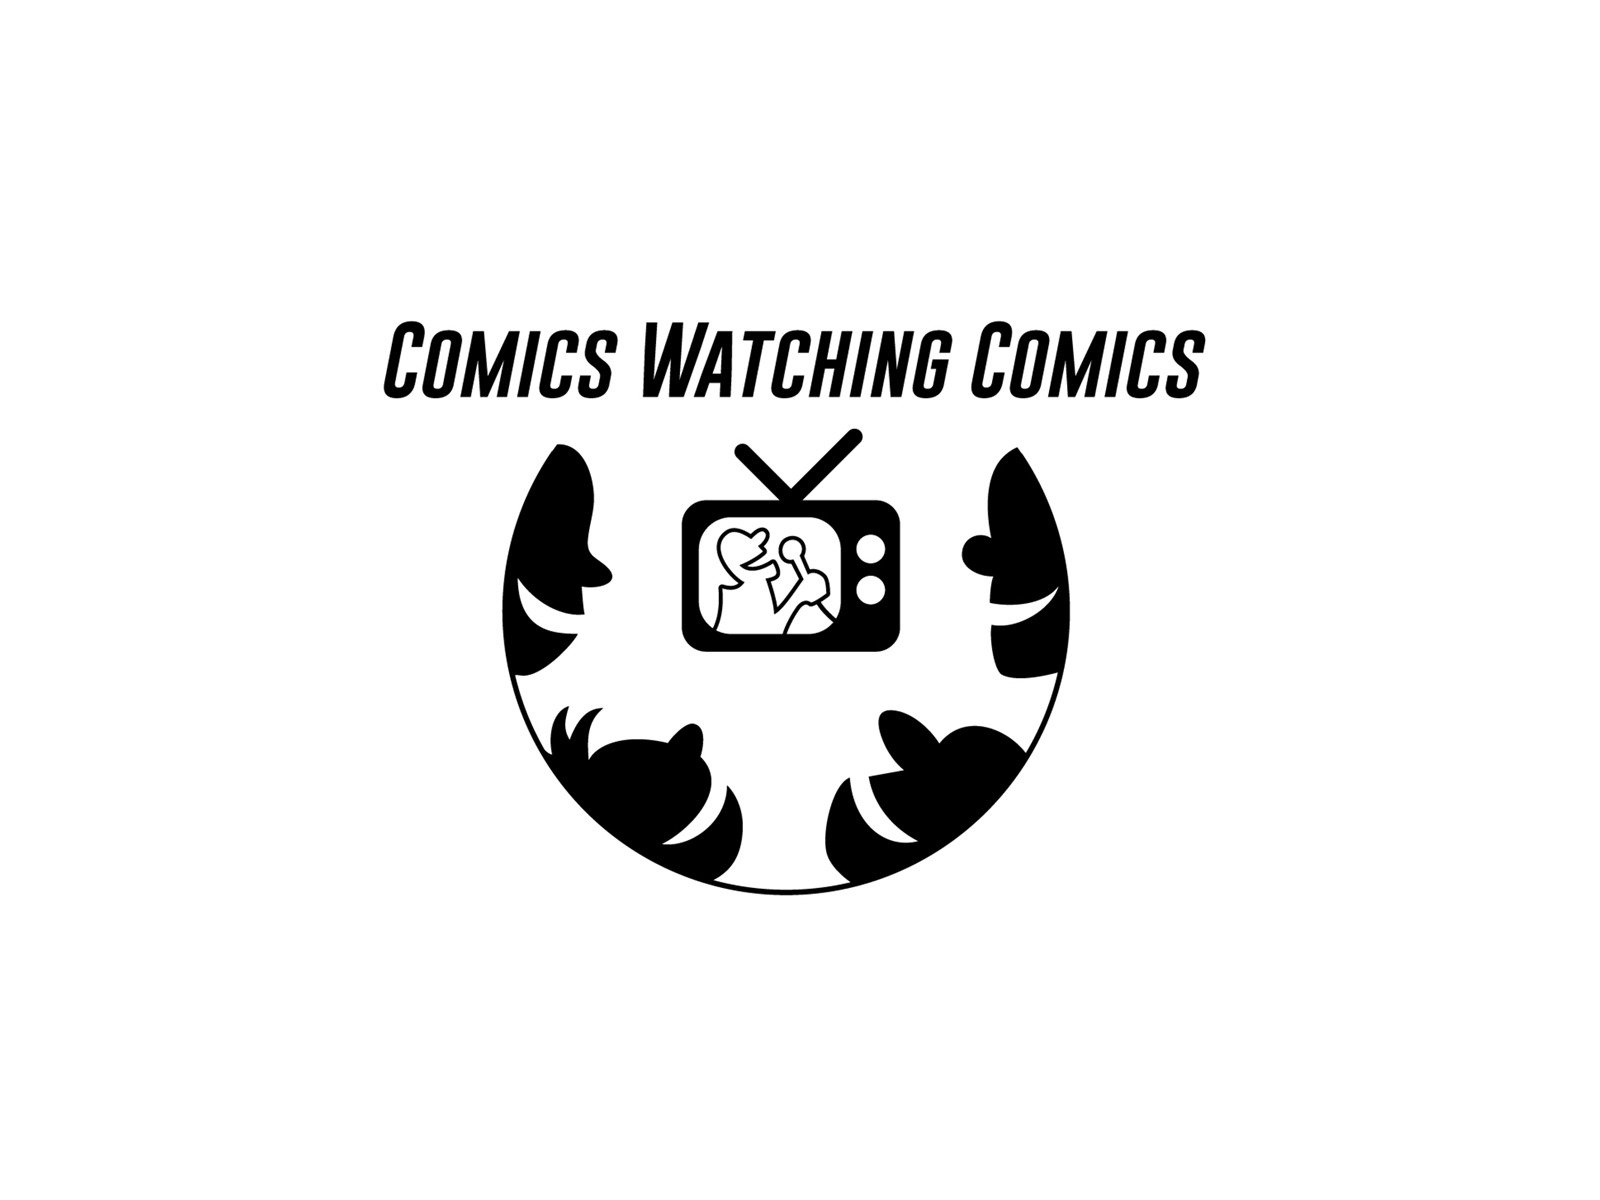 Comics Watching Comics - Season 3